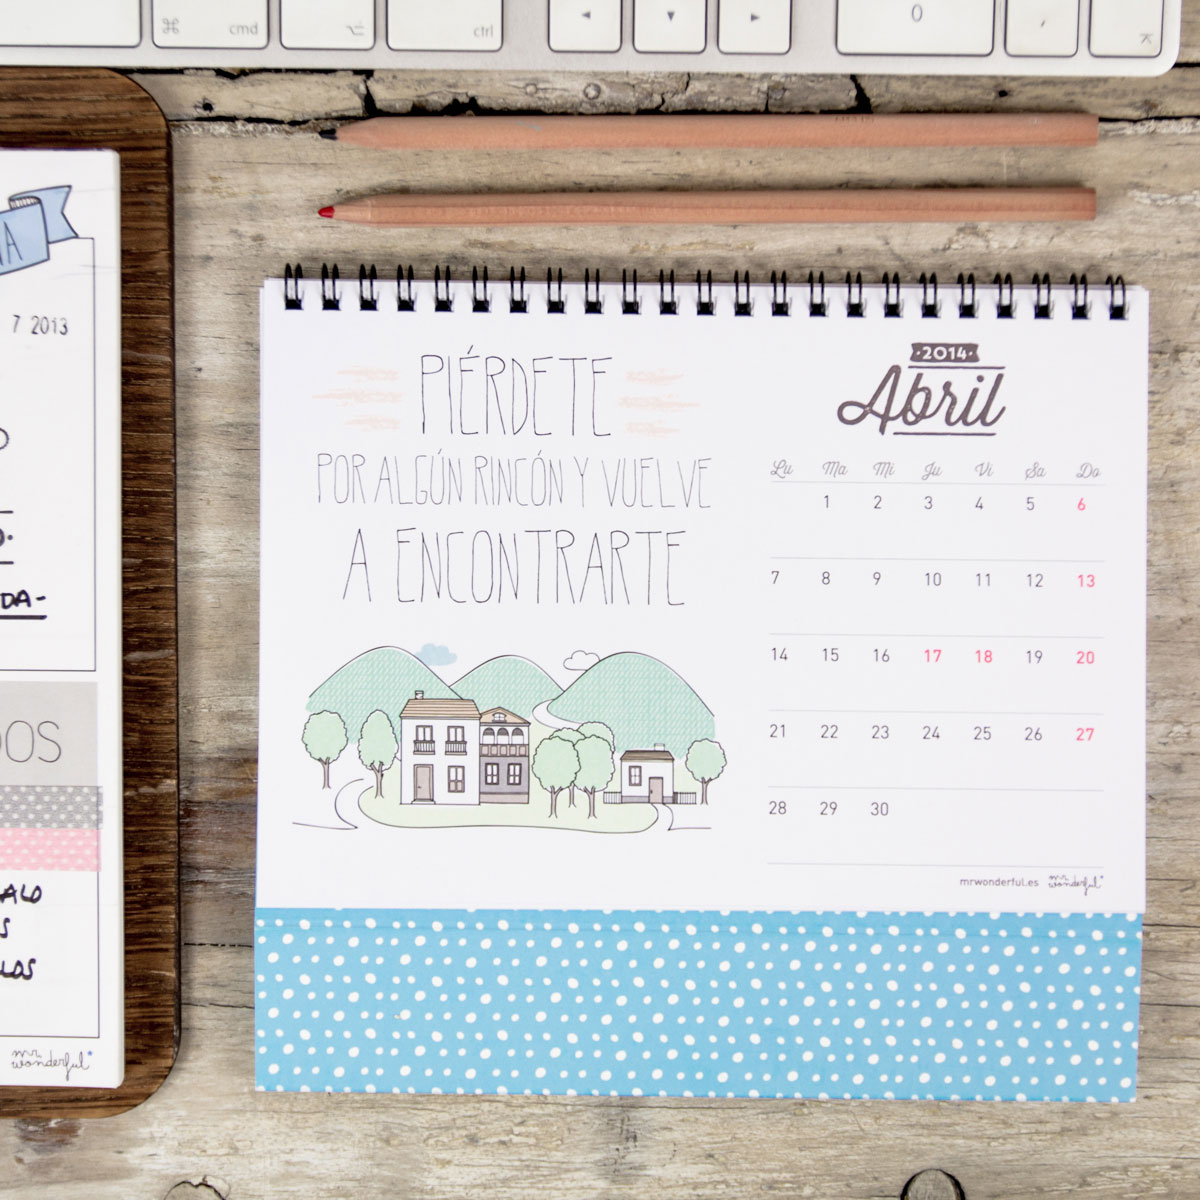 mrwonderful_calendarios_2014_143_1